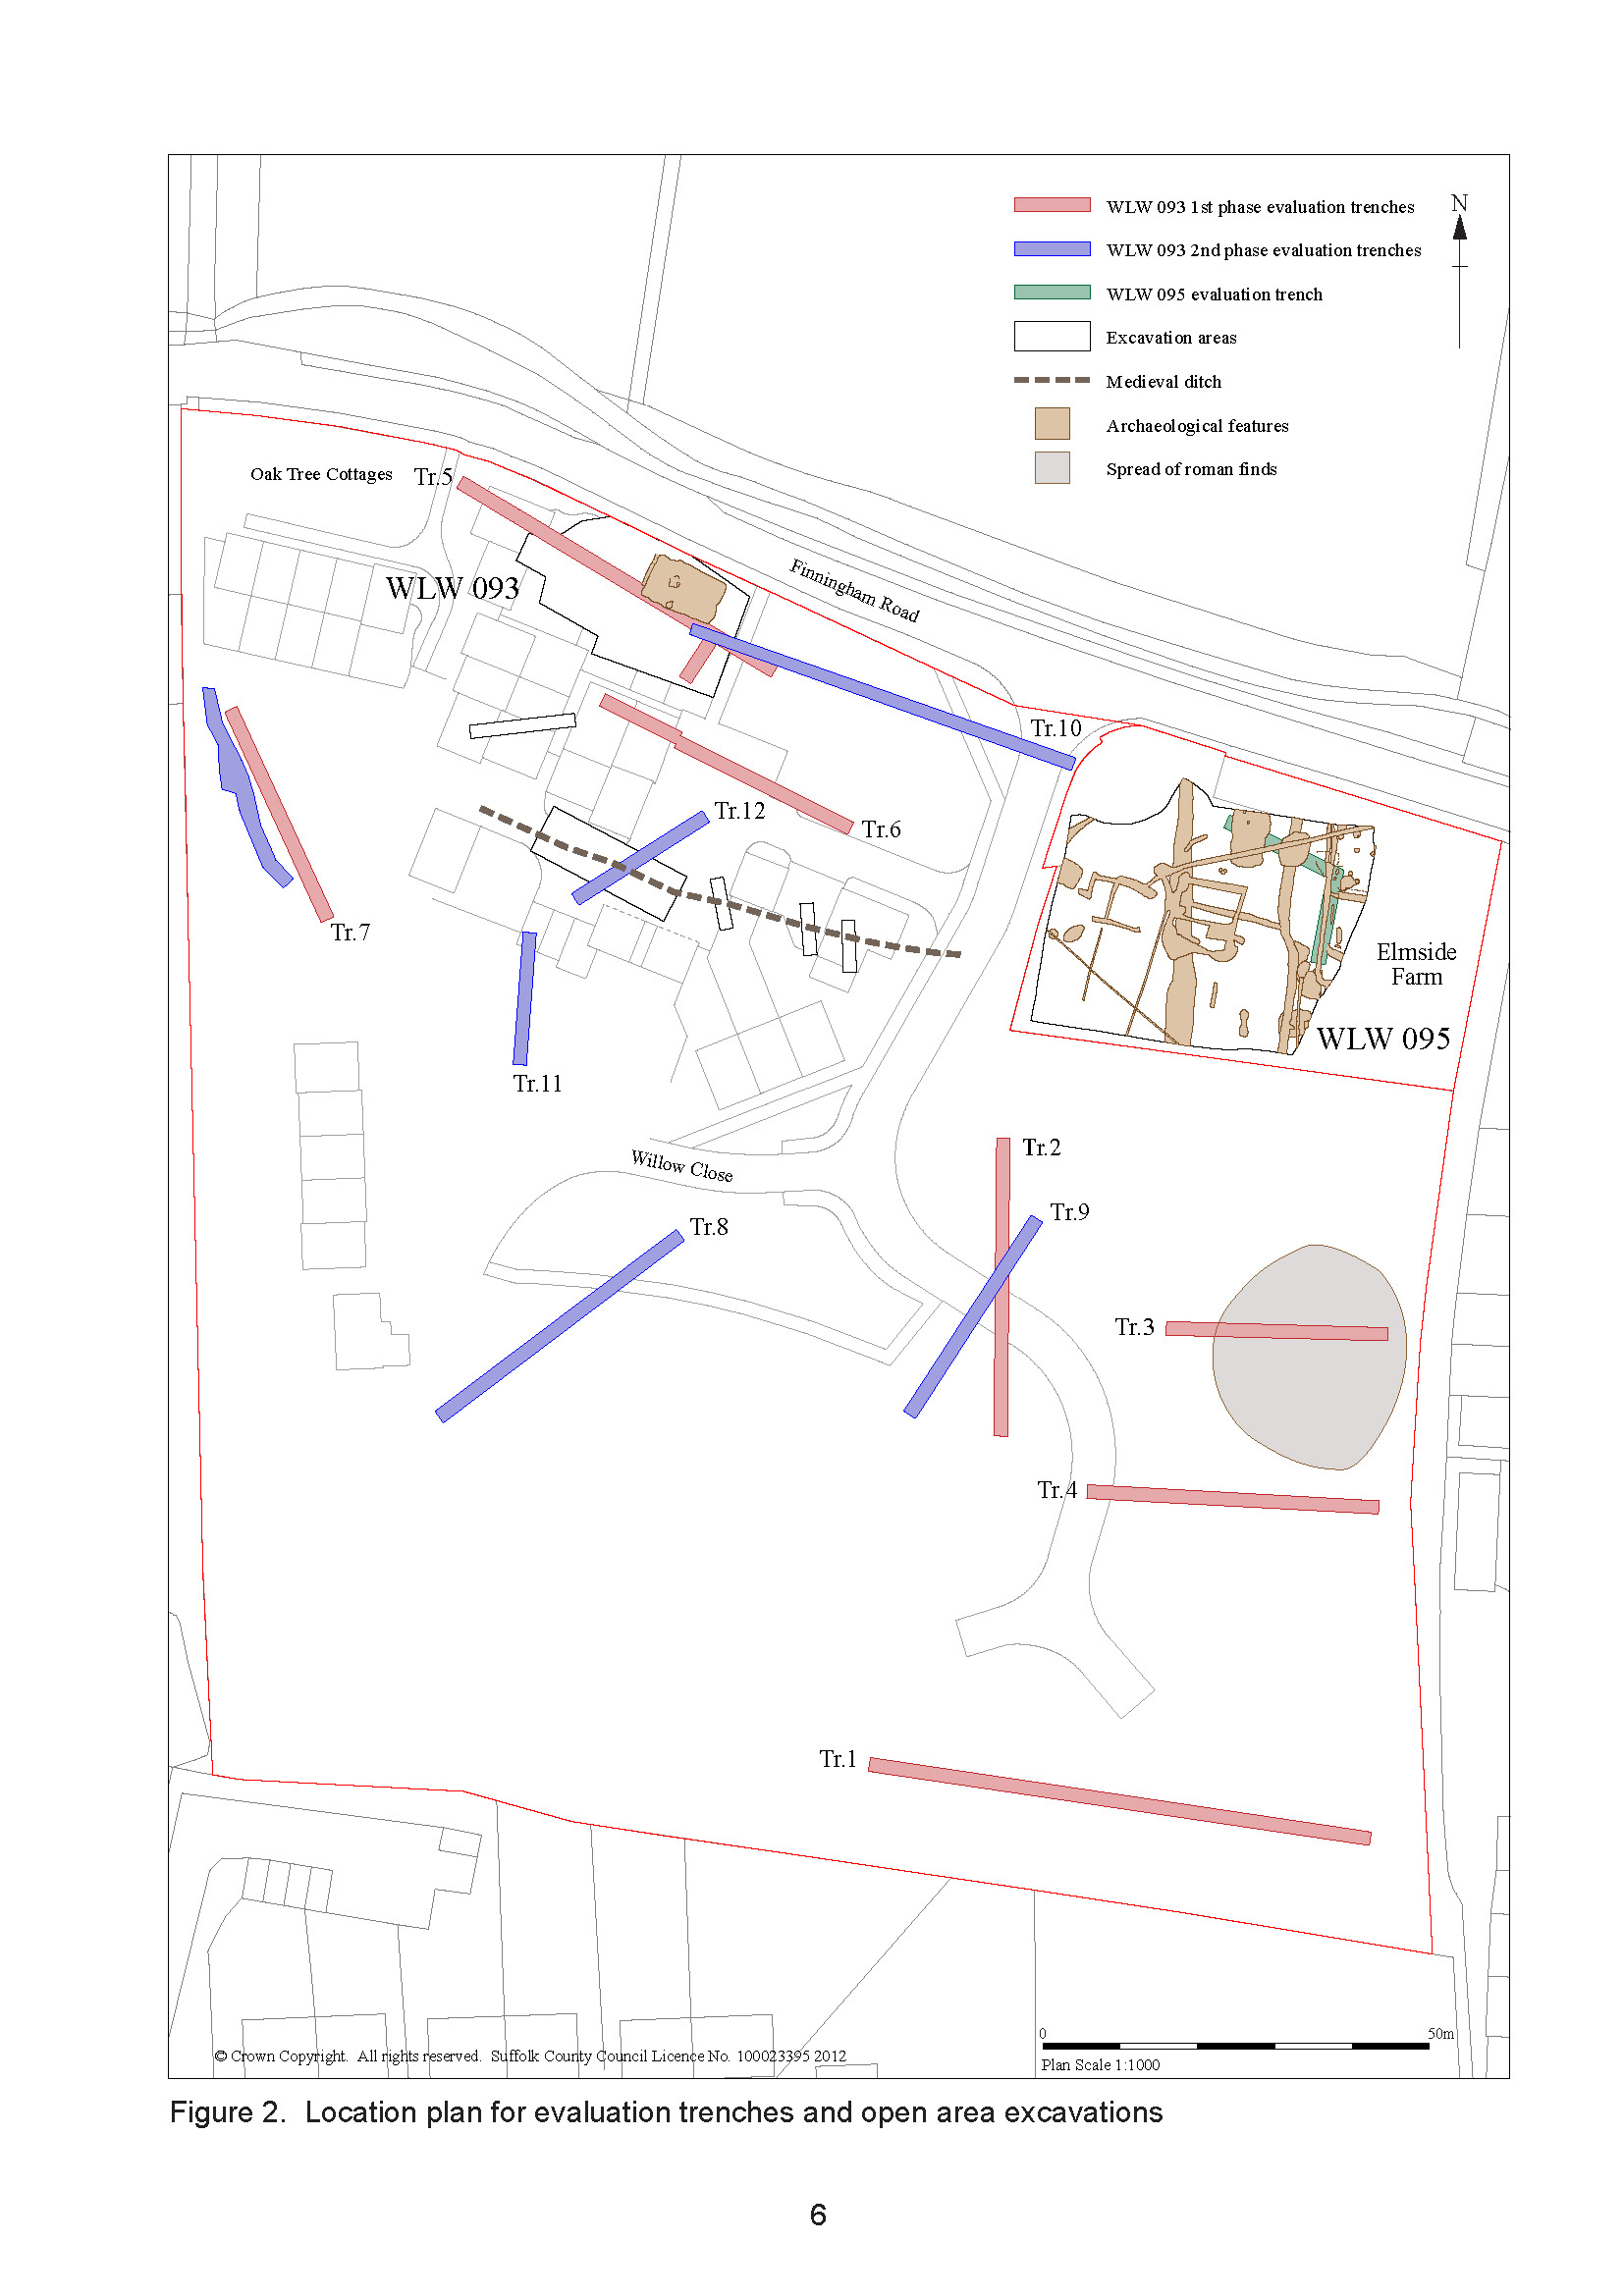 Report location plan from excavations of medieval settlement site at Walsham-le-Willows, Suffolk